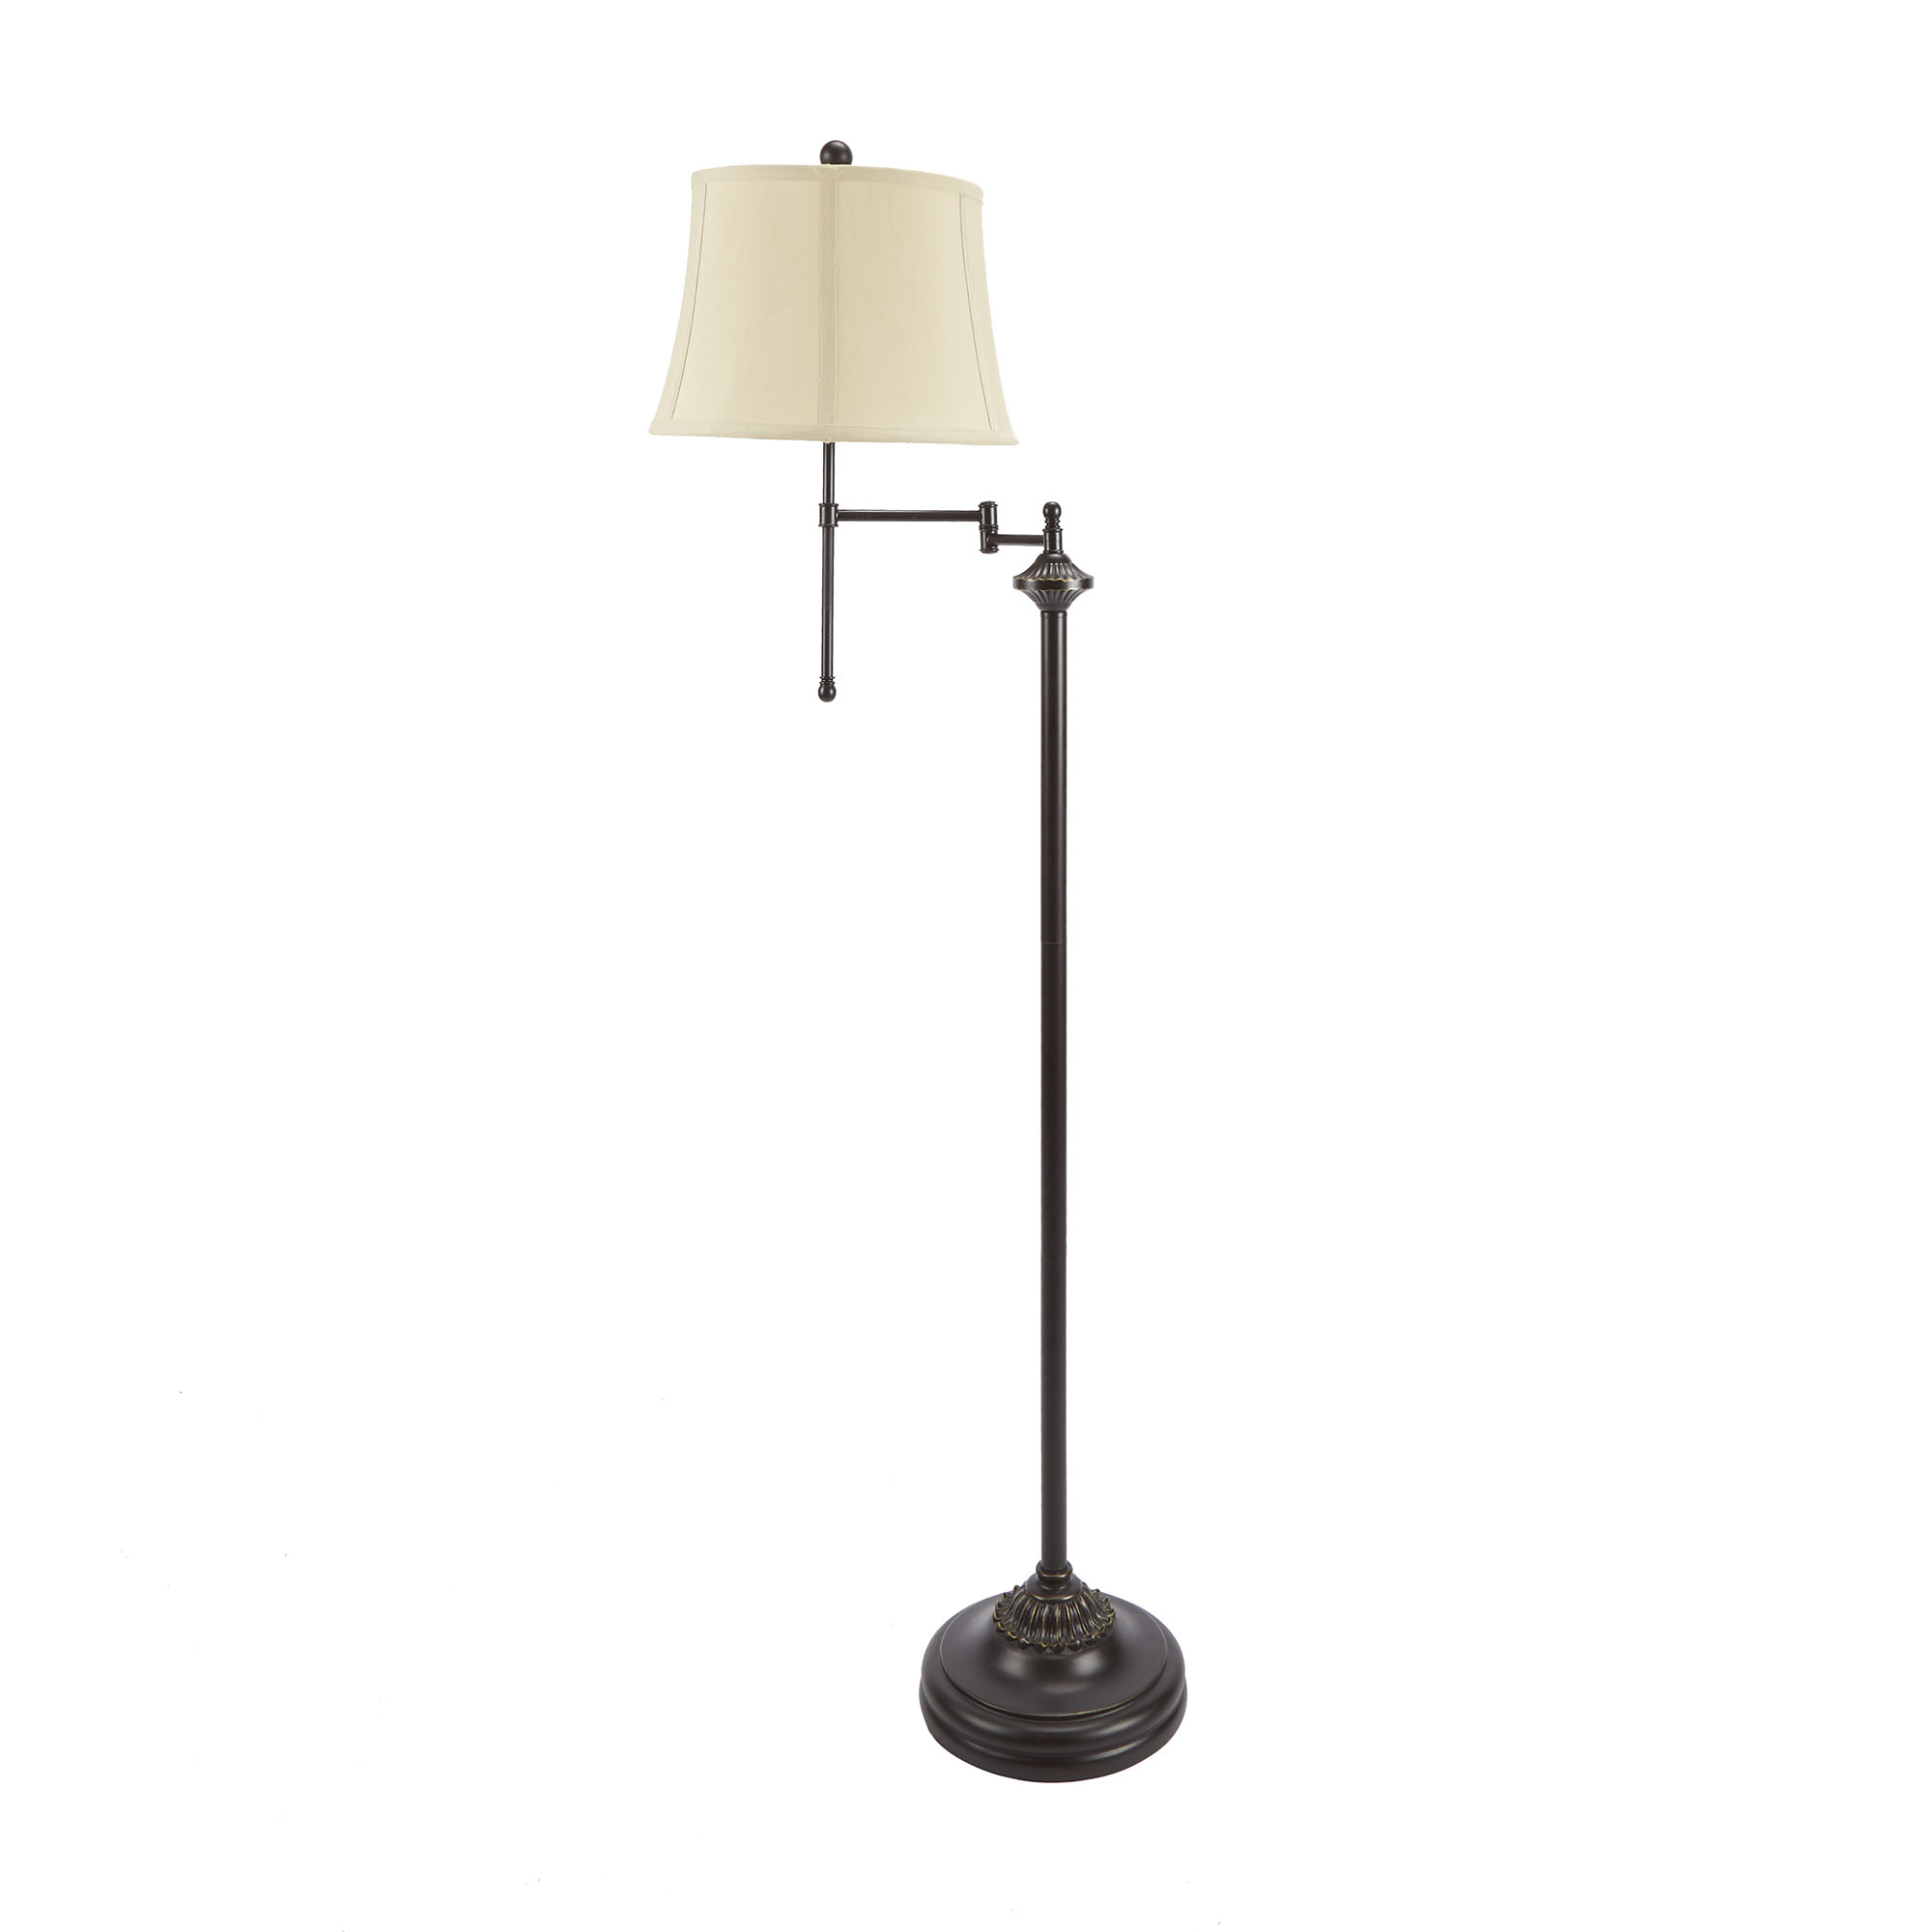 "Better Homes and Gardens 59"" Swing Arm Floor Lamp, CFL Bulb Included"